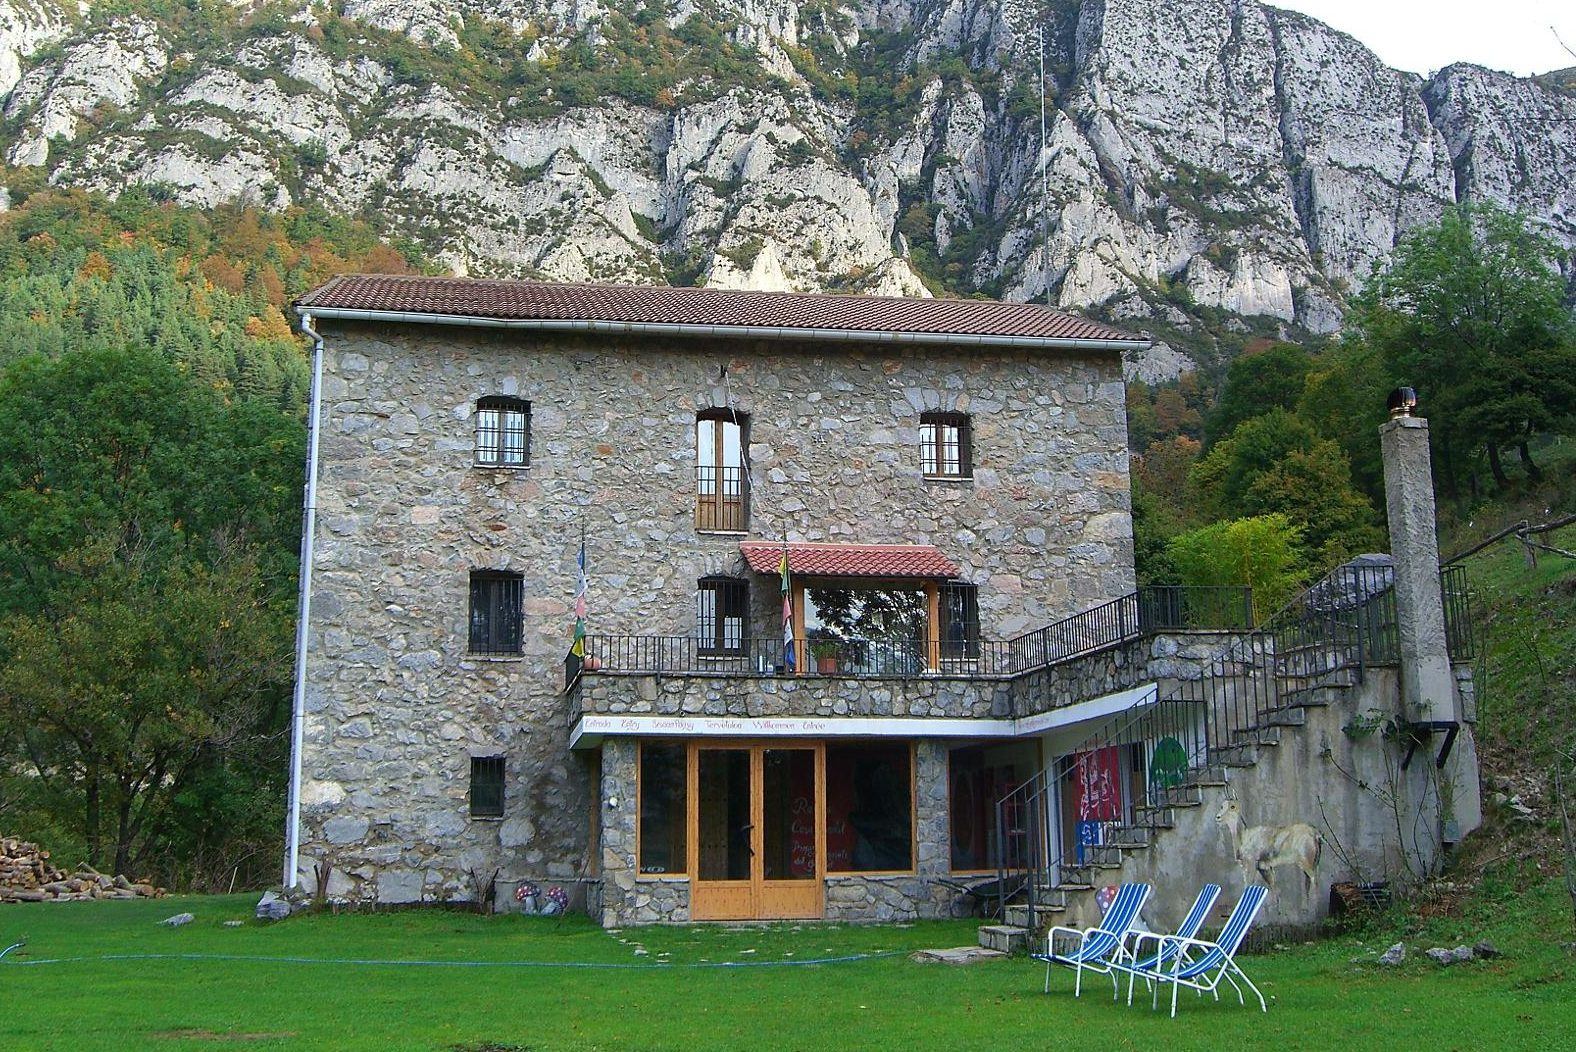 Refugi Gresolet 1 e1586946464341 - Mountain Shelters Pedraforca